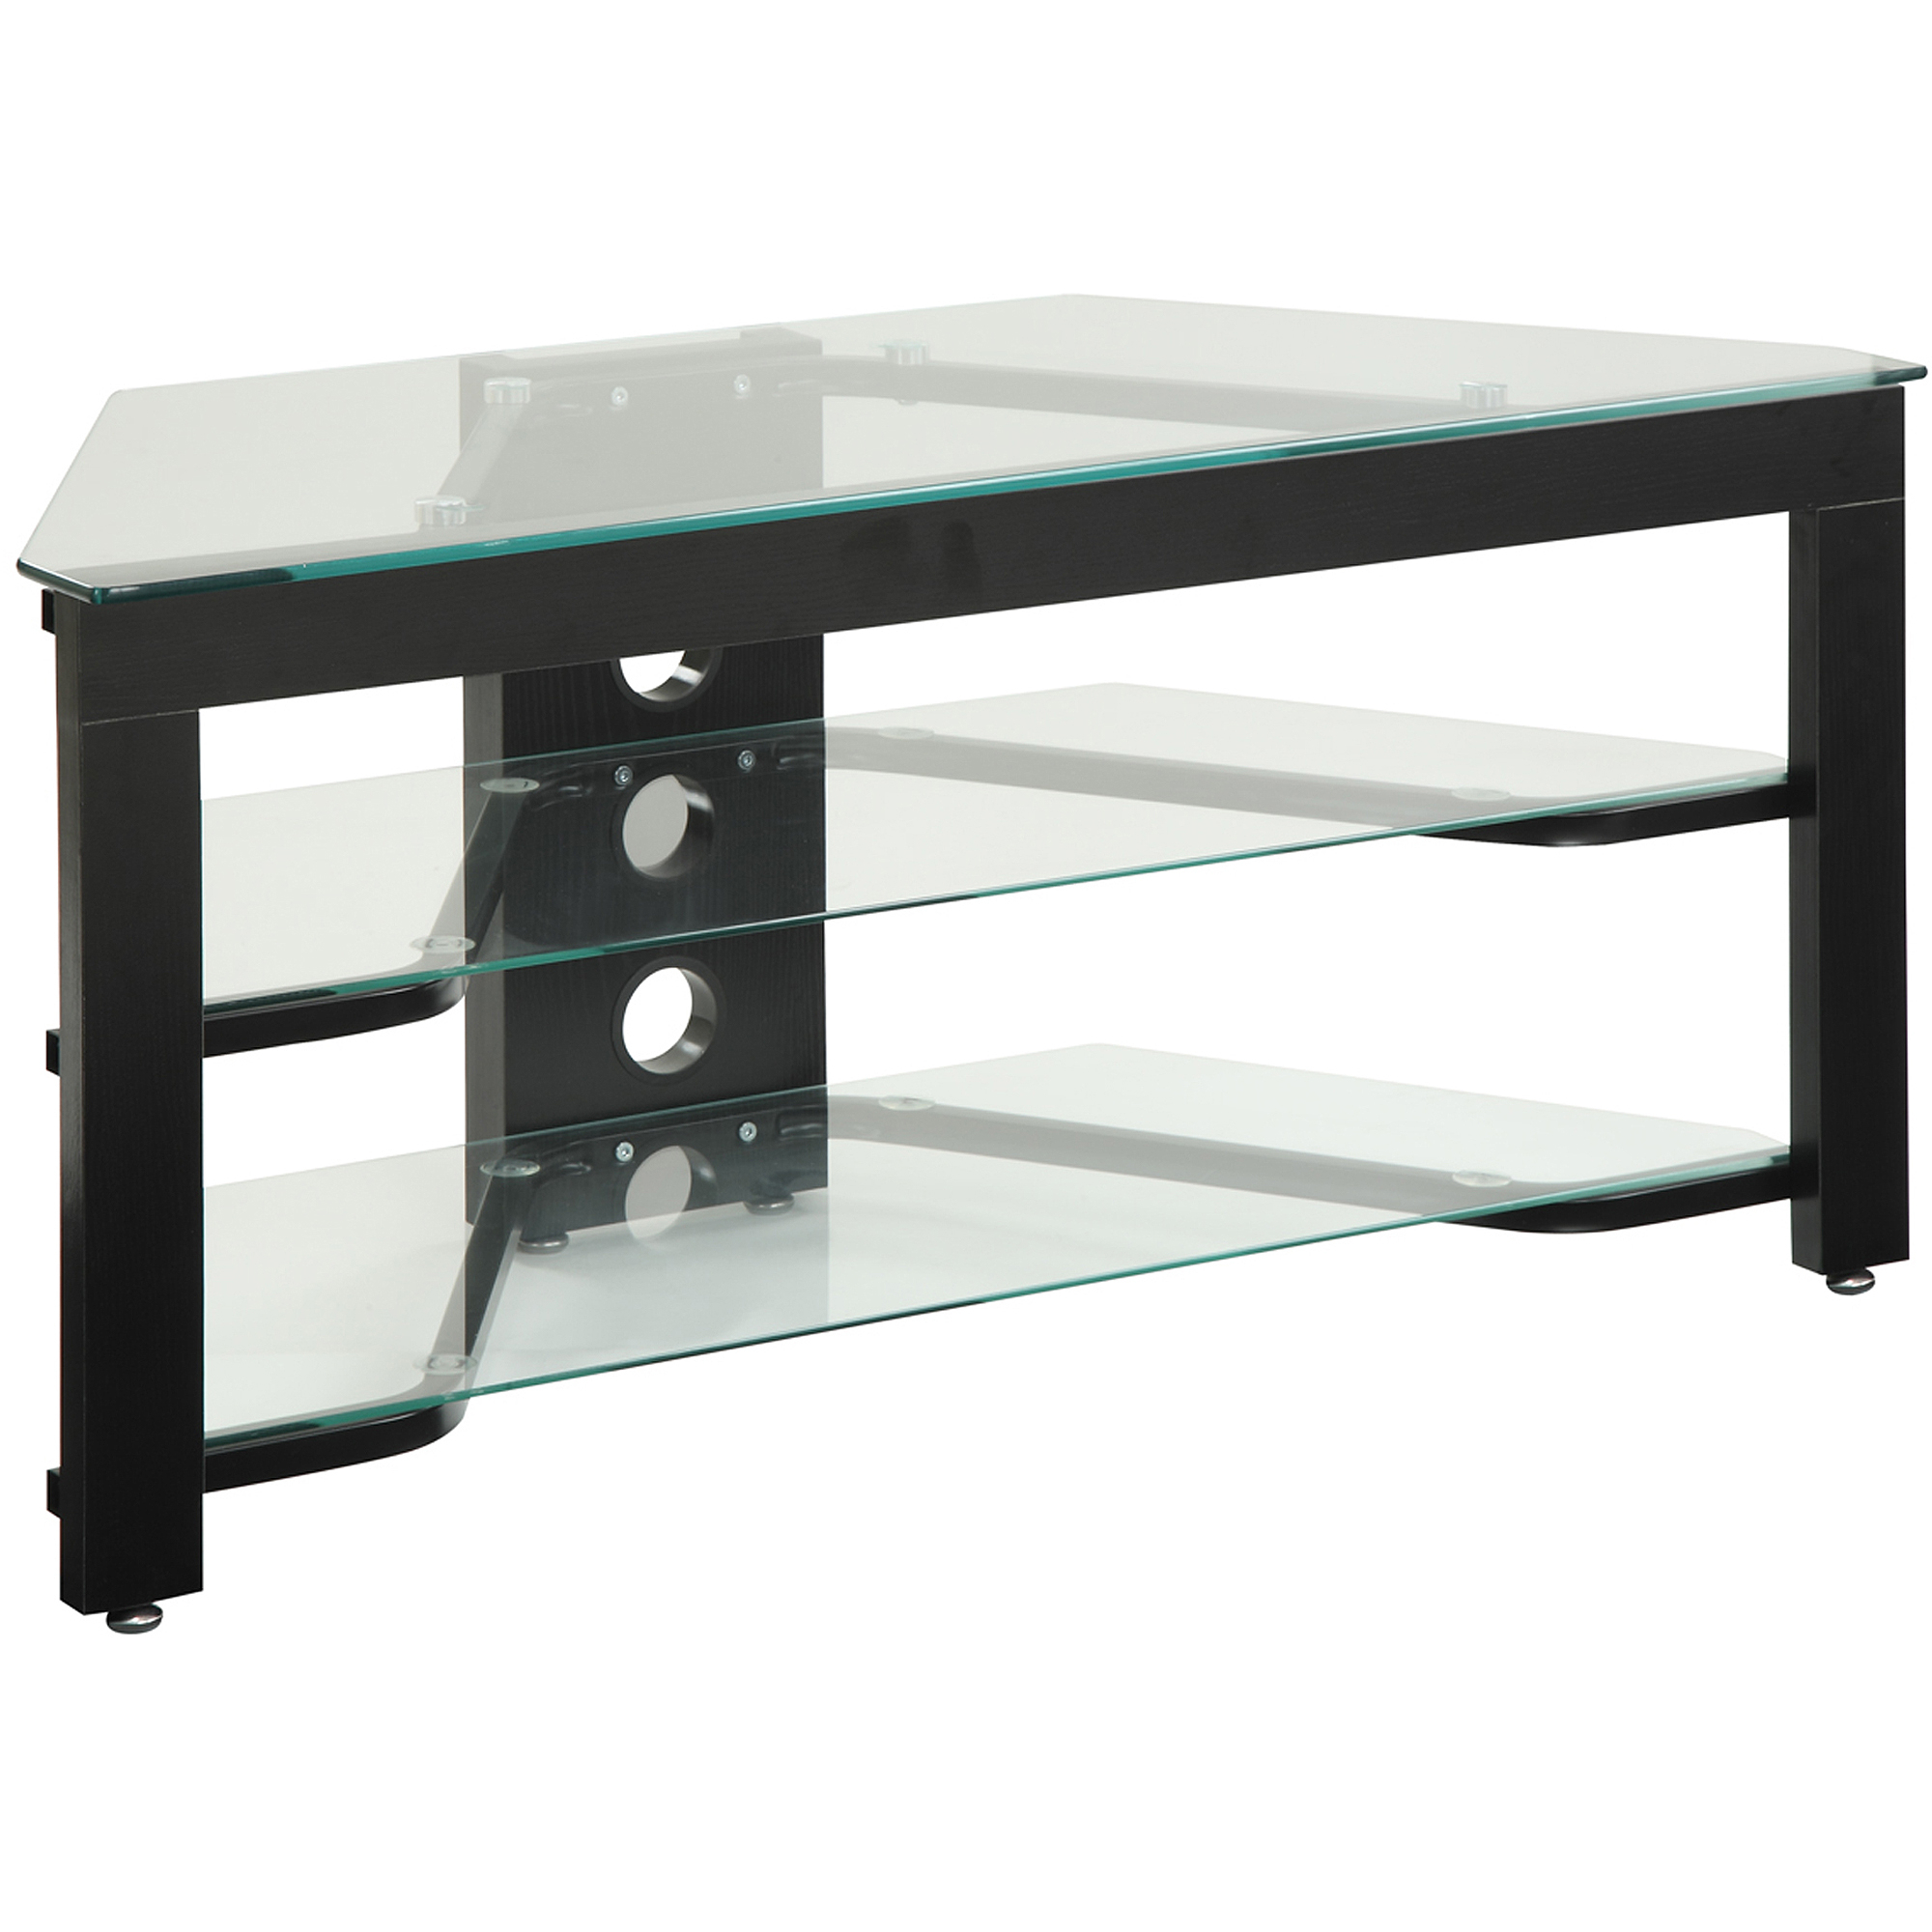 Most Recent Swivel Black Glass Tv Stands Intended For Led Tv Glass Stand 3 Shelf Console Tempered Tier Swivel For 55 Inch (Gallery 4 of 20)